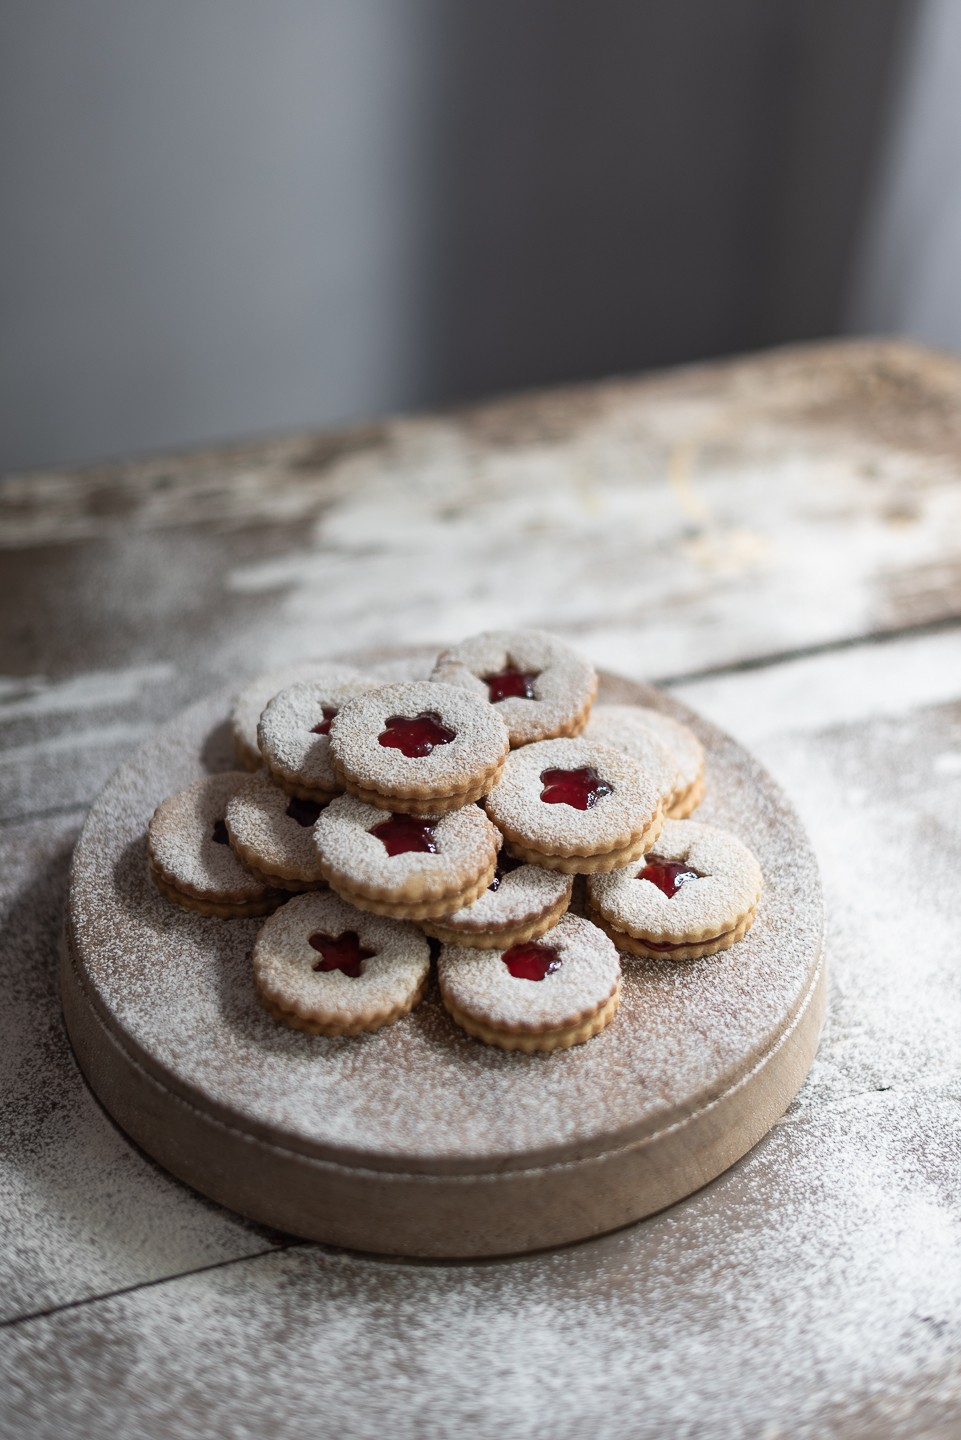 Linzer cookies Tagged | Bibby's Kitchen @ 36 | A food blog sharing recipes, stories and travel